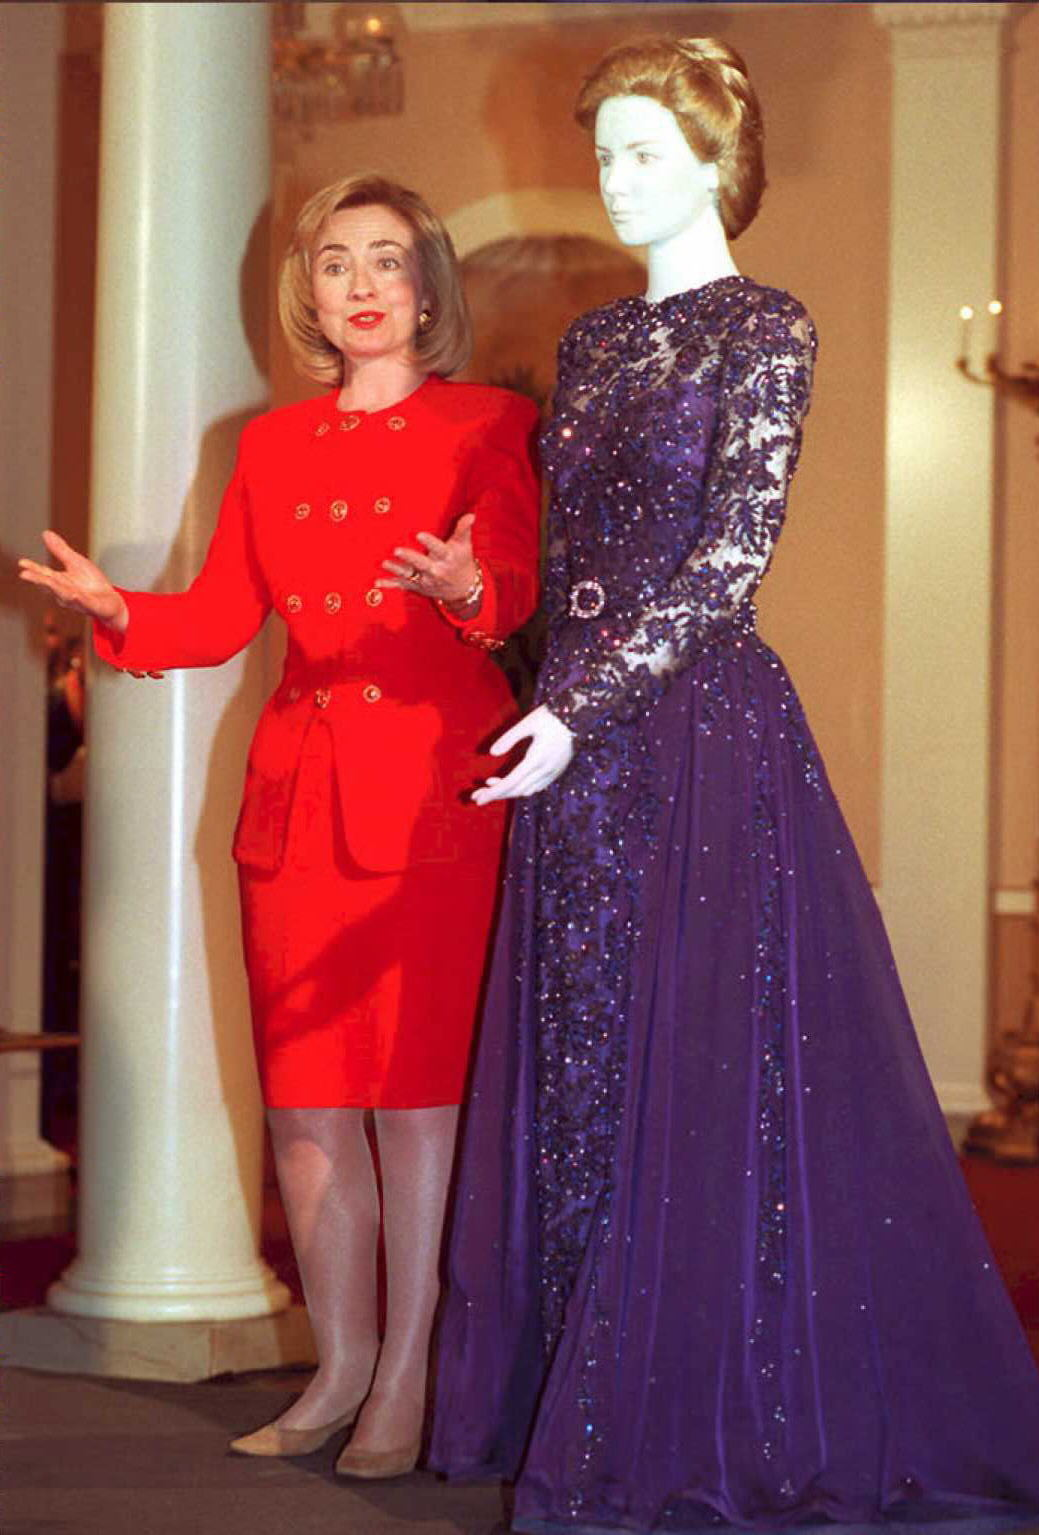 The Most \'90s Photos Of Hillary Clinton Ever Taken Are Even Better ...